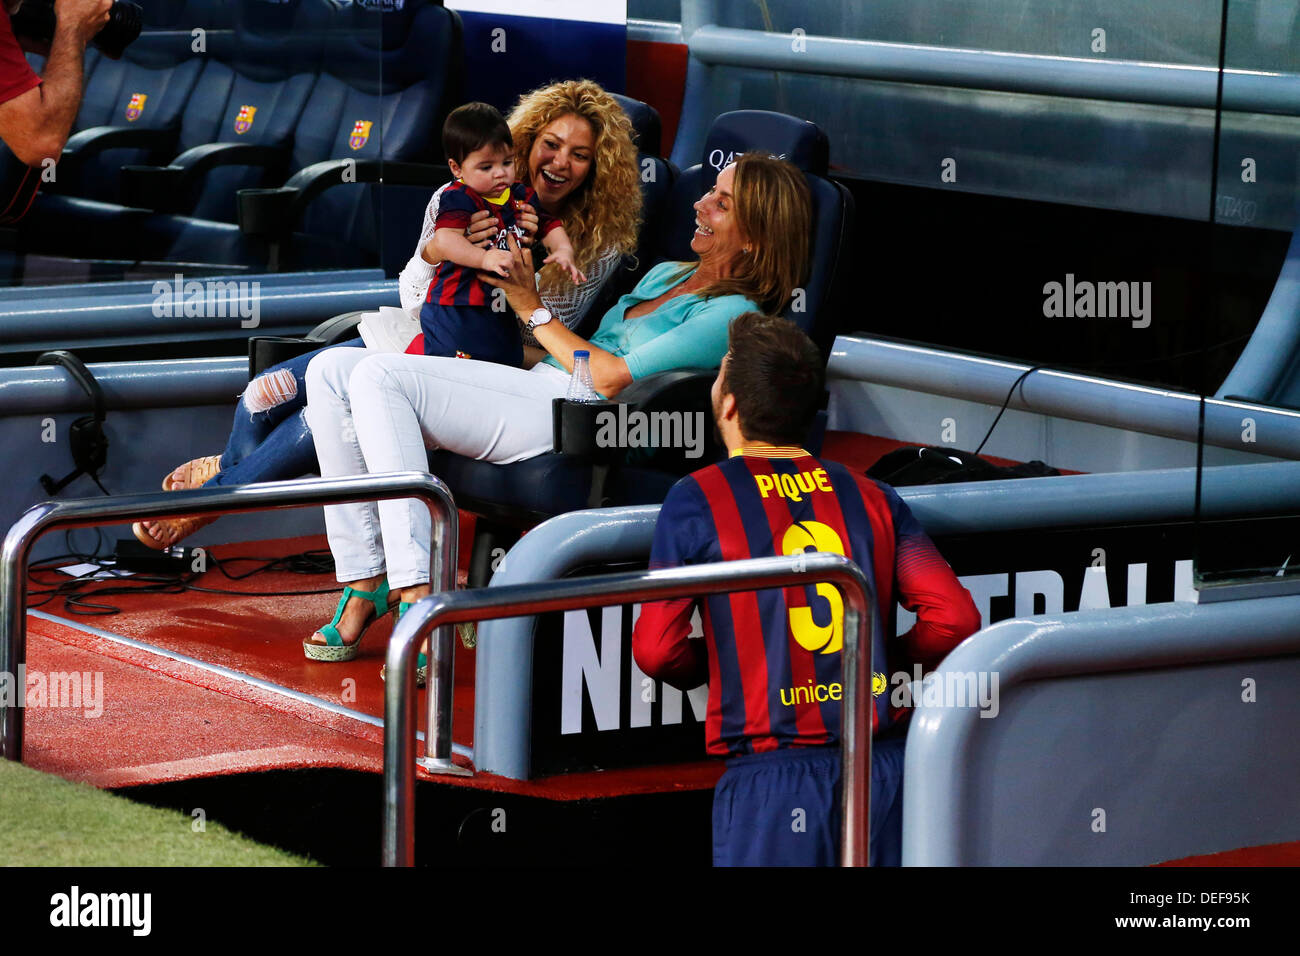 Roter Teppich Spanisch Shakira And Gerard Pique Stockfotos And Shakira And Gerard